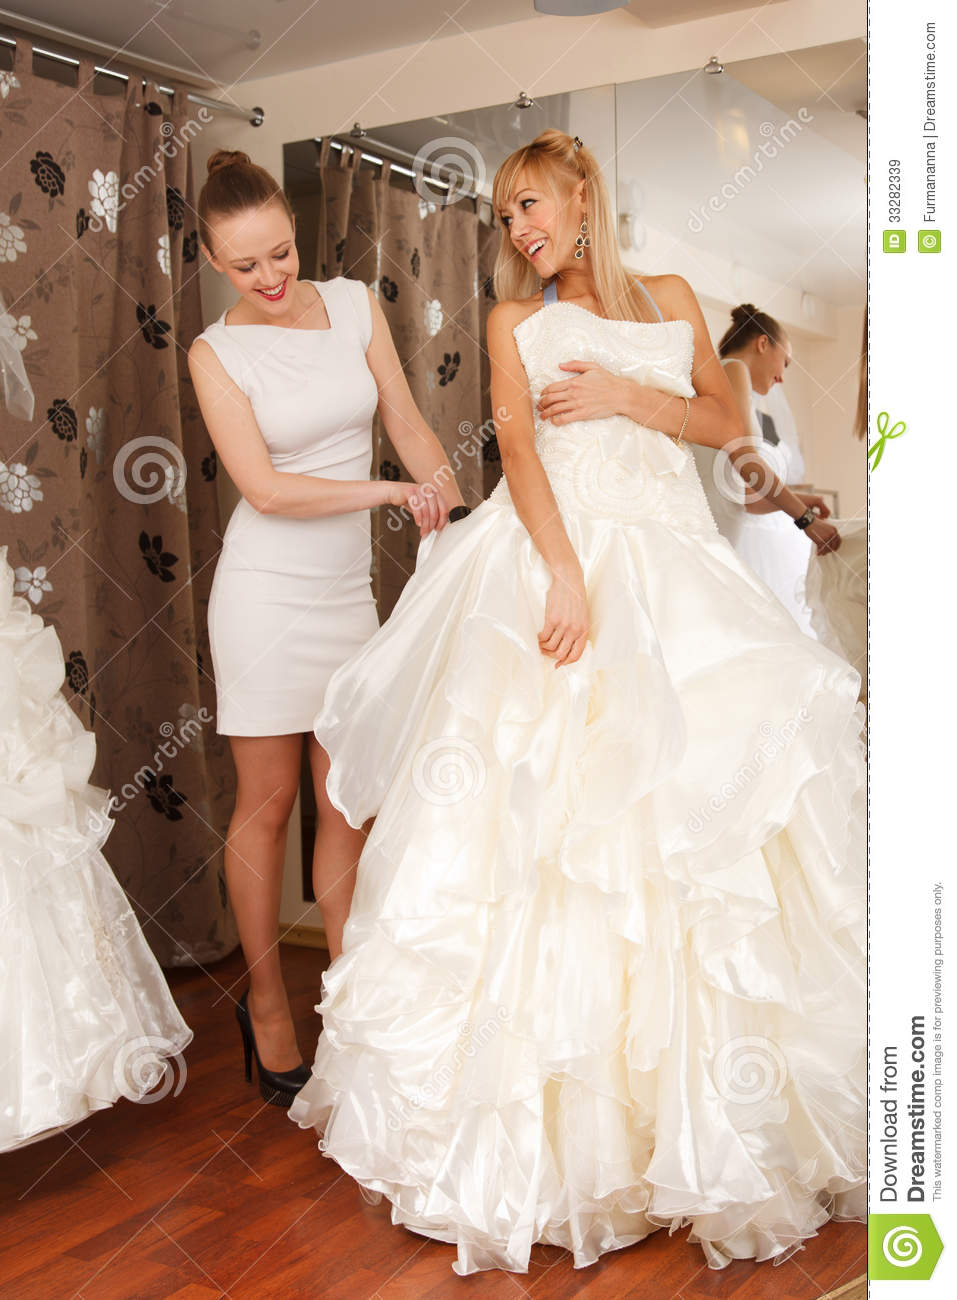 Women shopping for wedding dress royalty free stock images for Wedding dress shops reading